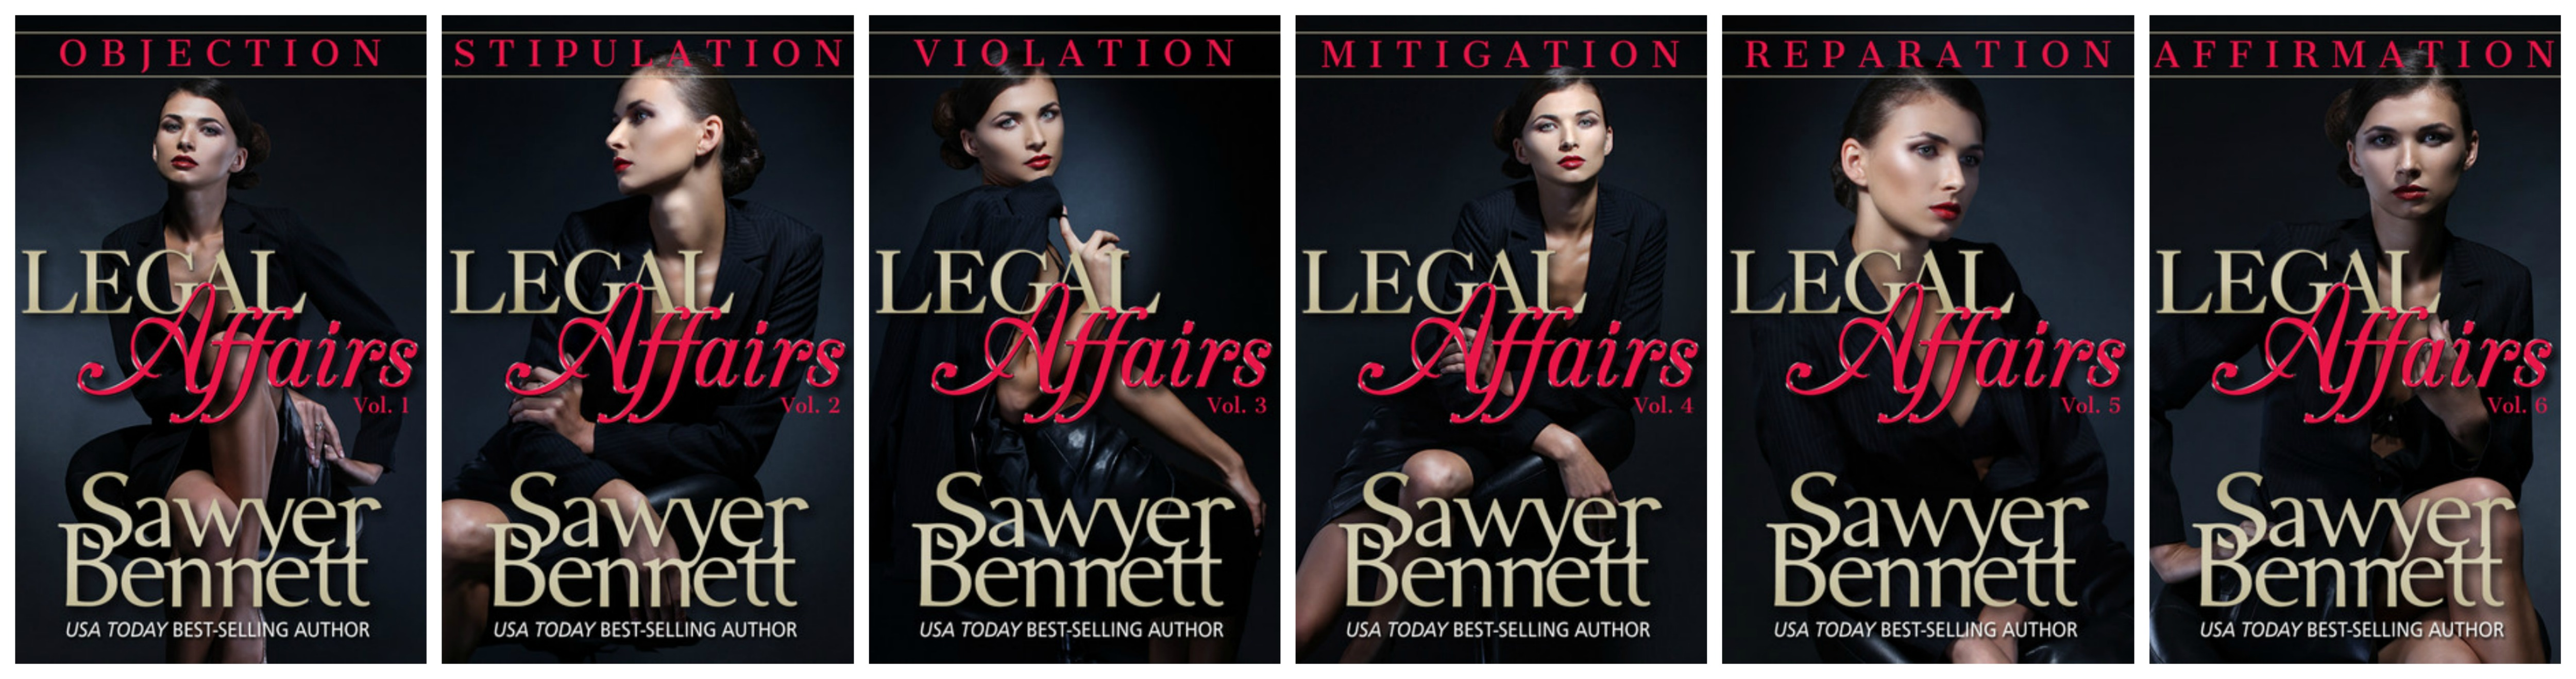 Final Legal Affairs Covers